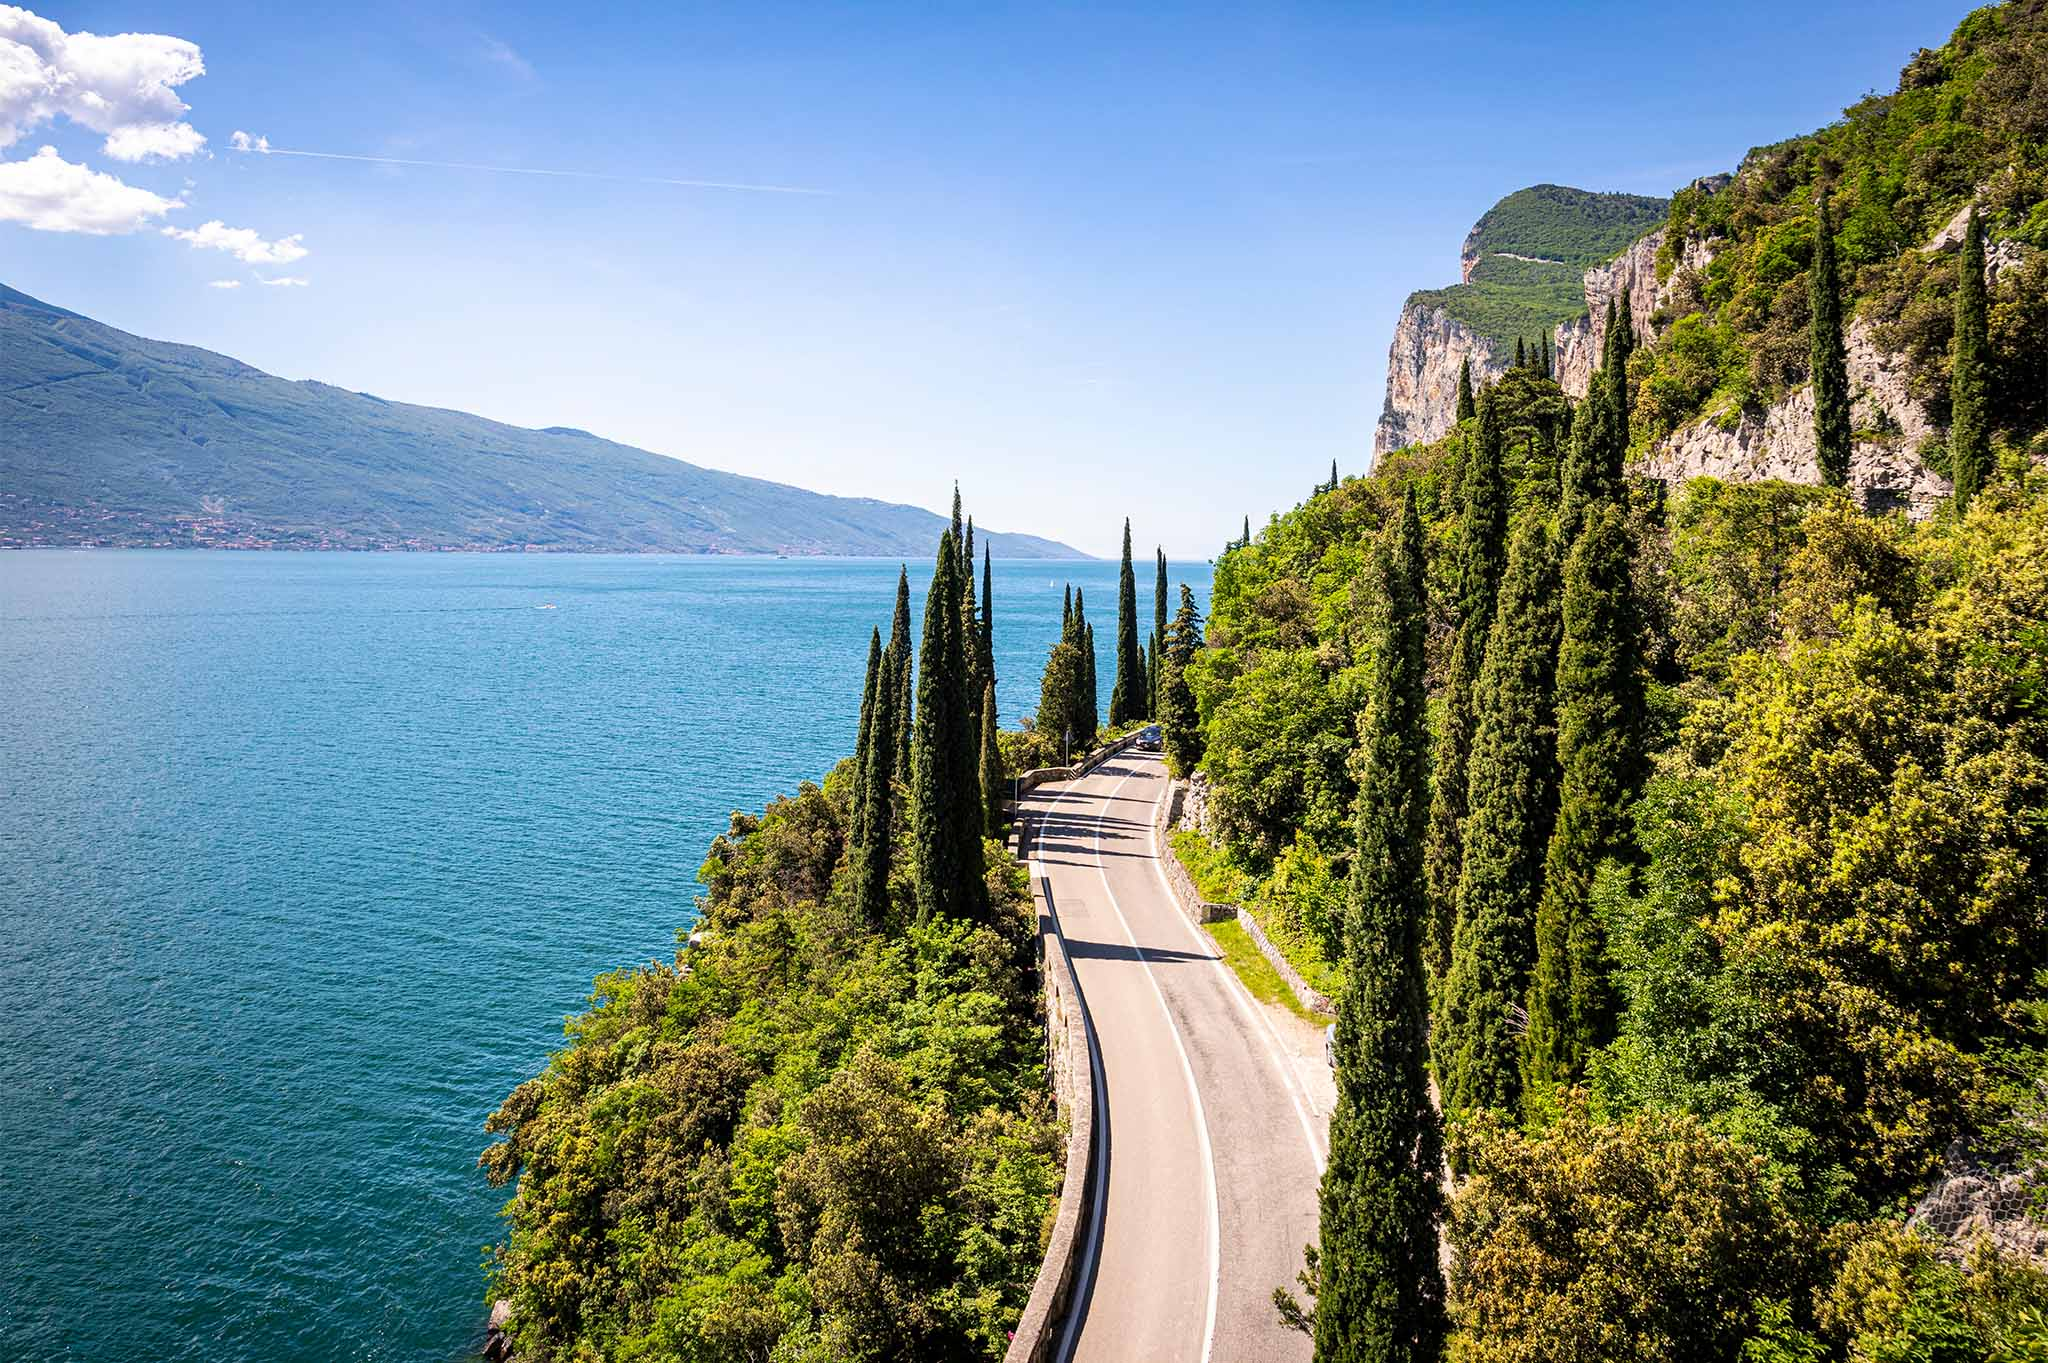 Lake Garda Villas and Properties for Sale | Italy Sotheby's Realty - sothebys.photo 1